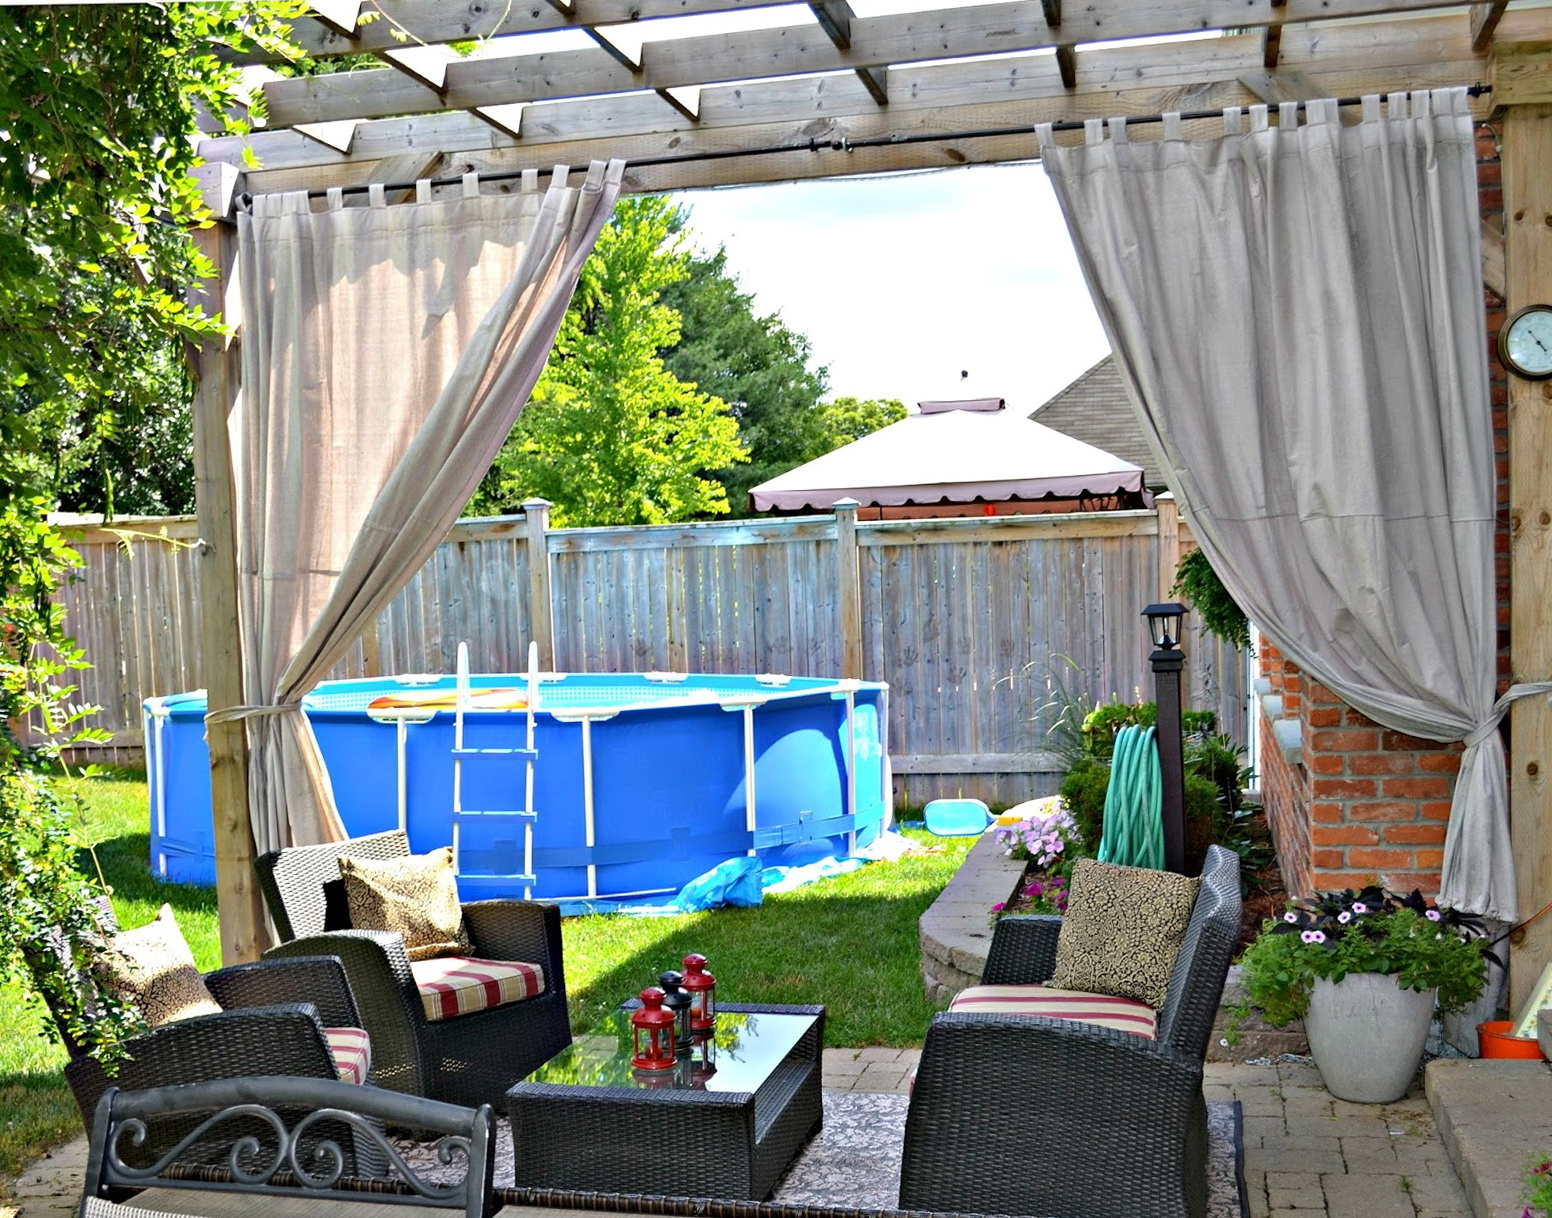 Plastic Curtains For Outdoor Patio Mosquito Netting Curtains And No See Um Netting Curtains